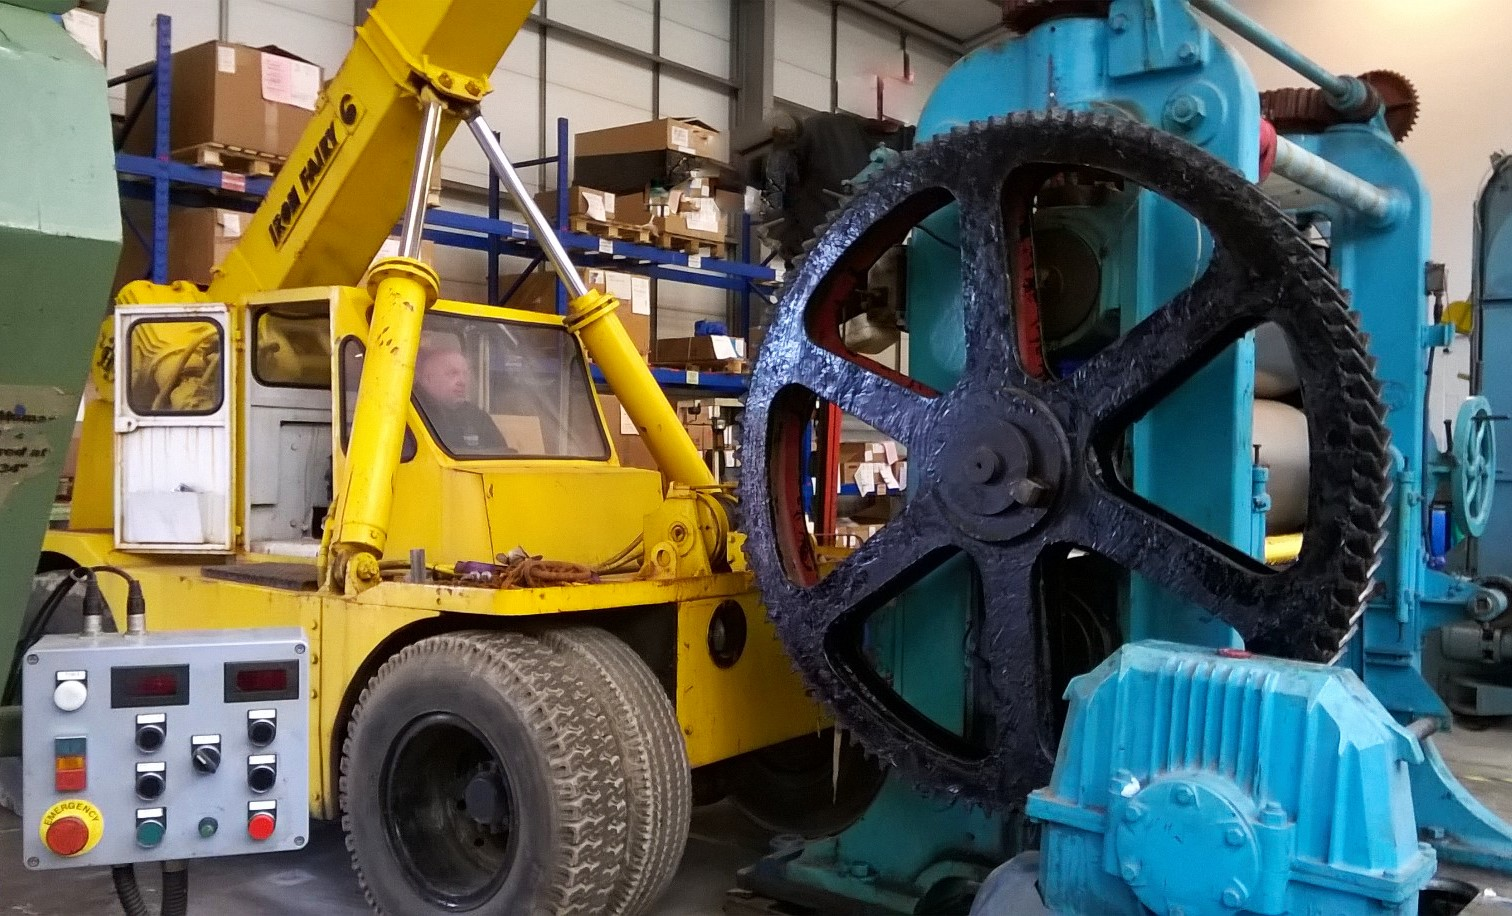 The Machinery Mevrs - Machinery Moving & Plant Decommissioning